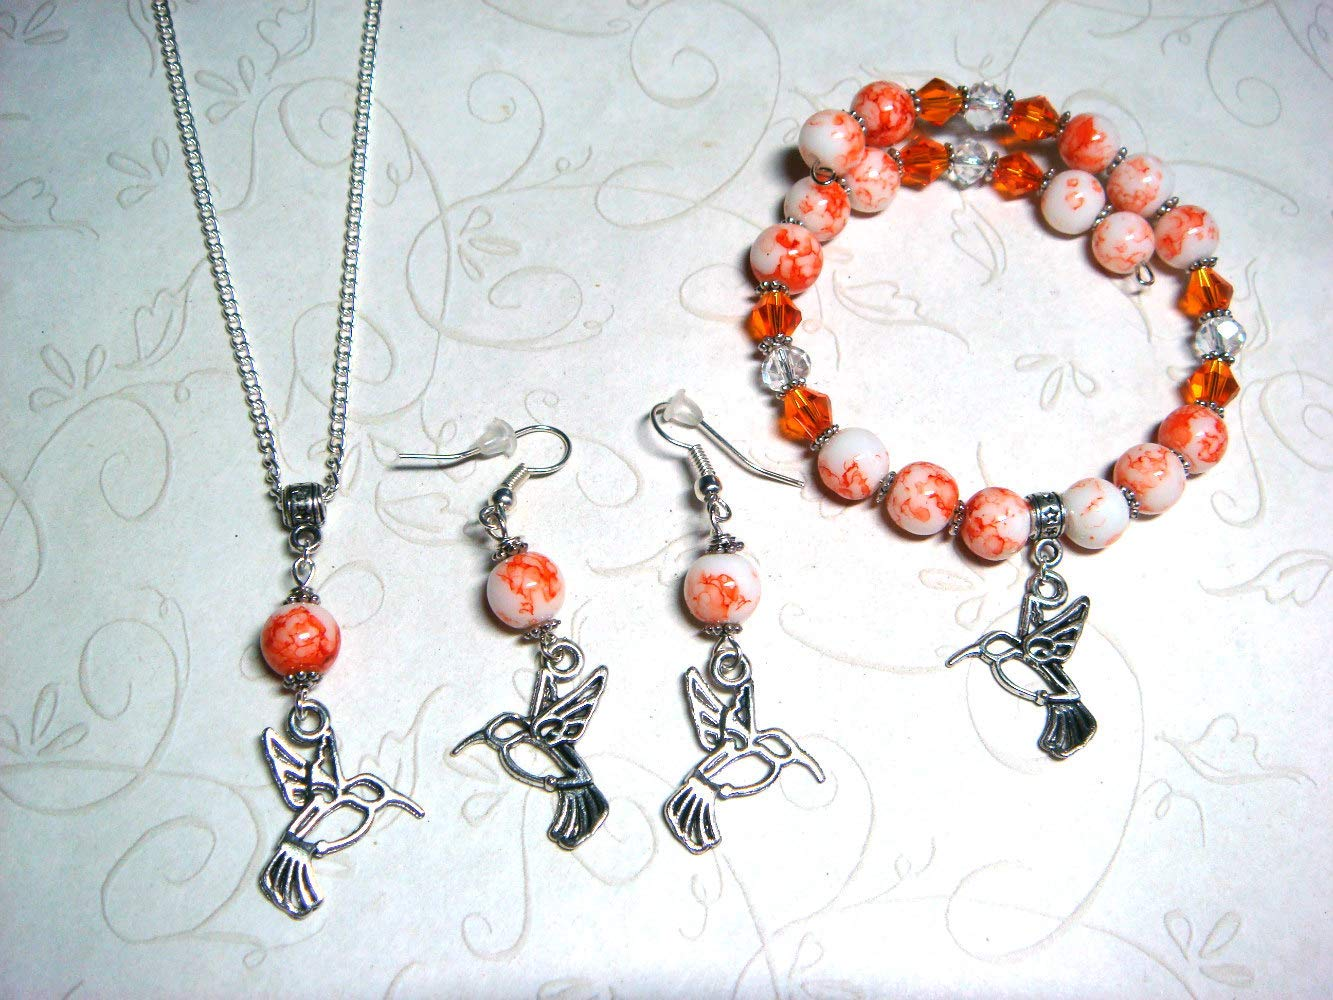 Hummingbird Jewelry Set, 3-Piece Jewelry Set, Orange & White Watercolor Glass Beads, Hummingbird Bracelet, Pierced Dangle Earrings, Necklace, Gift for Her, Jewelry Set for Women, Totem Spirit Animal